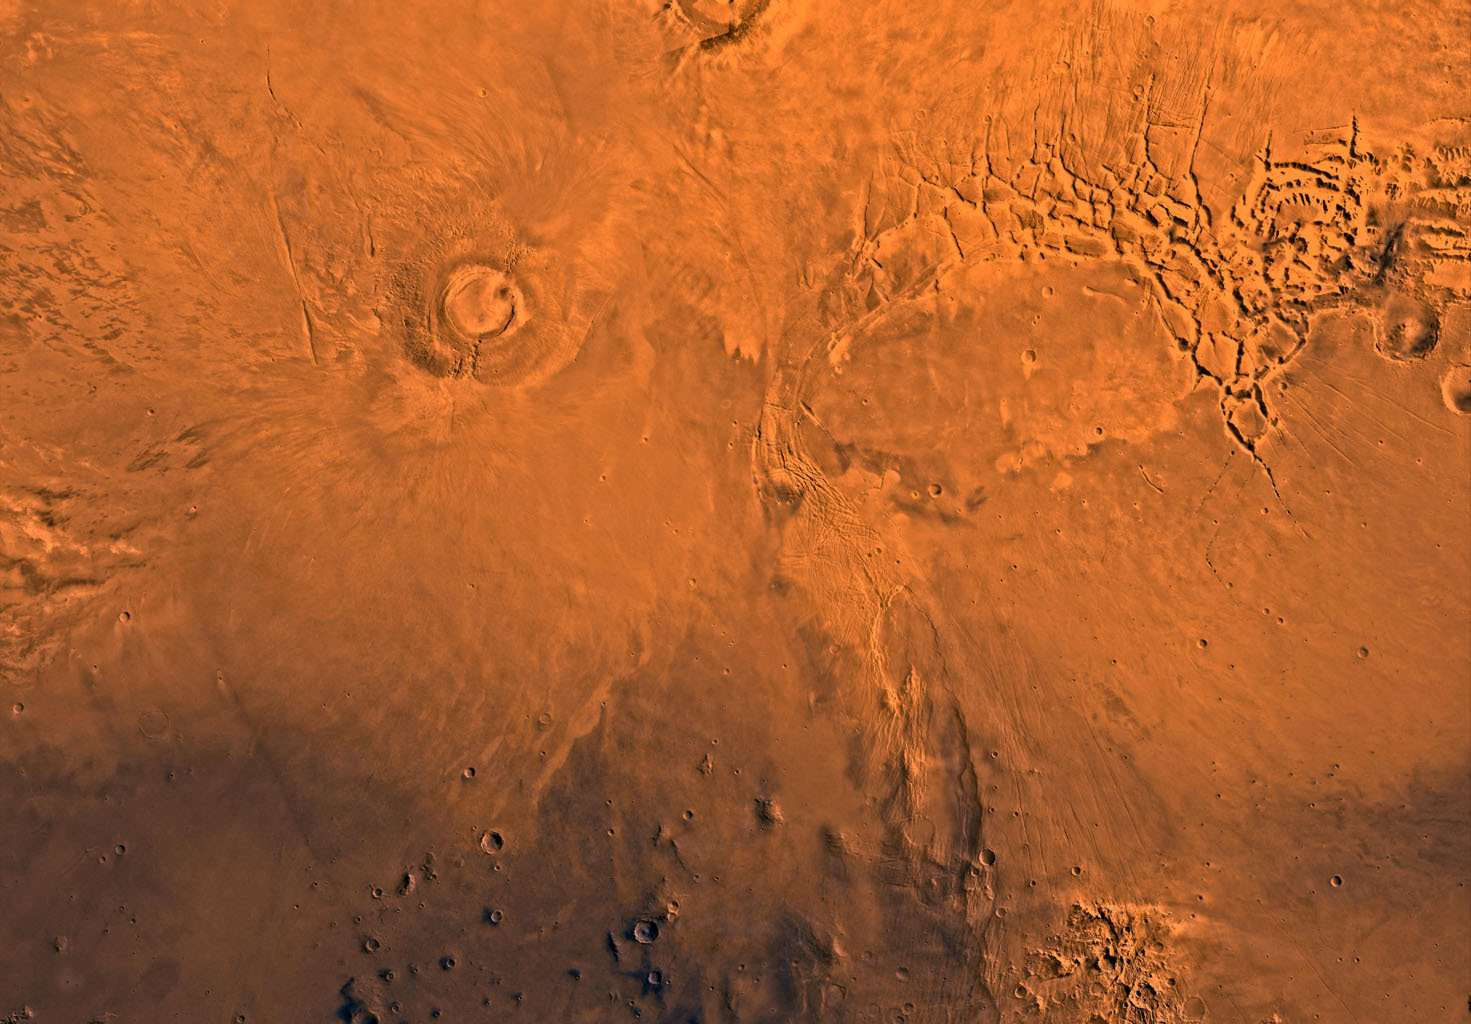 Nasa says dinosaurs, Mars volcano went extinct about same time